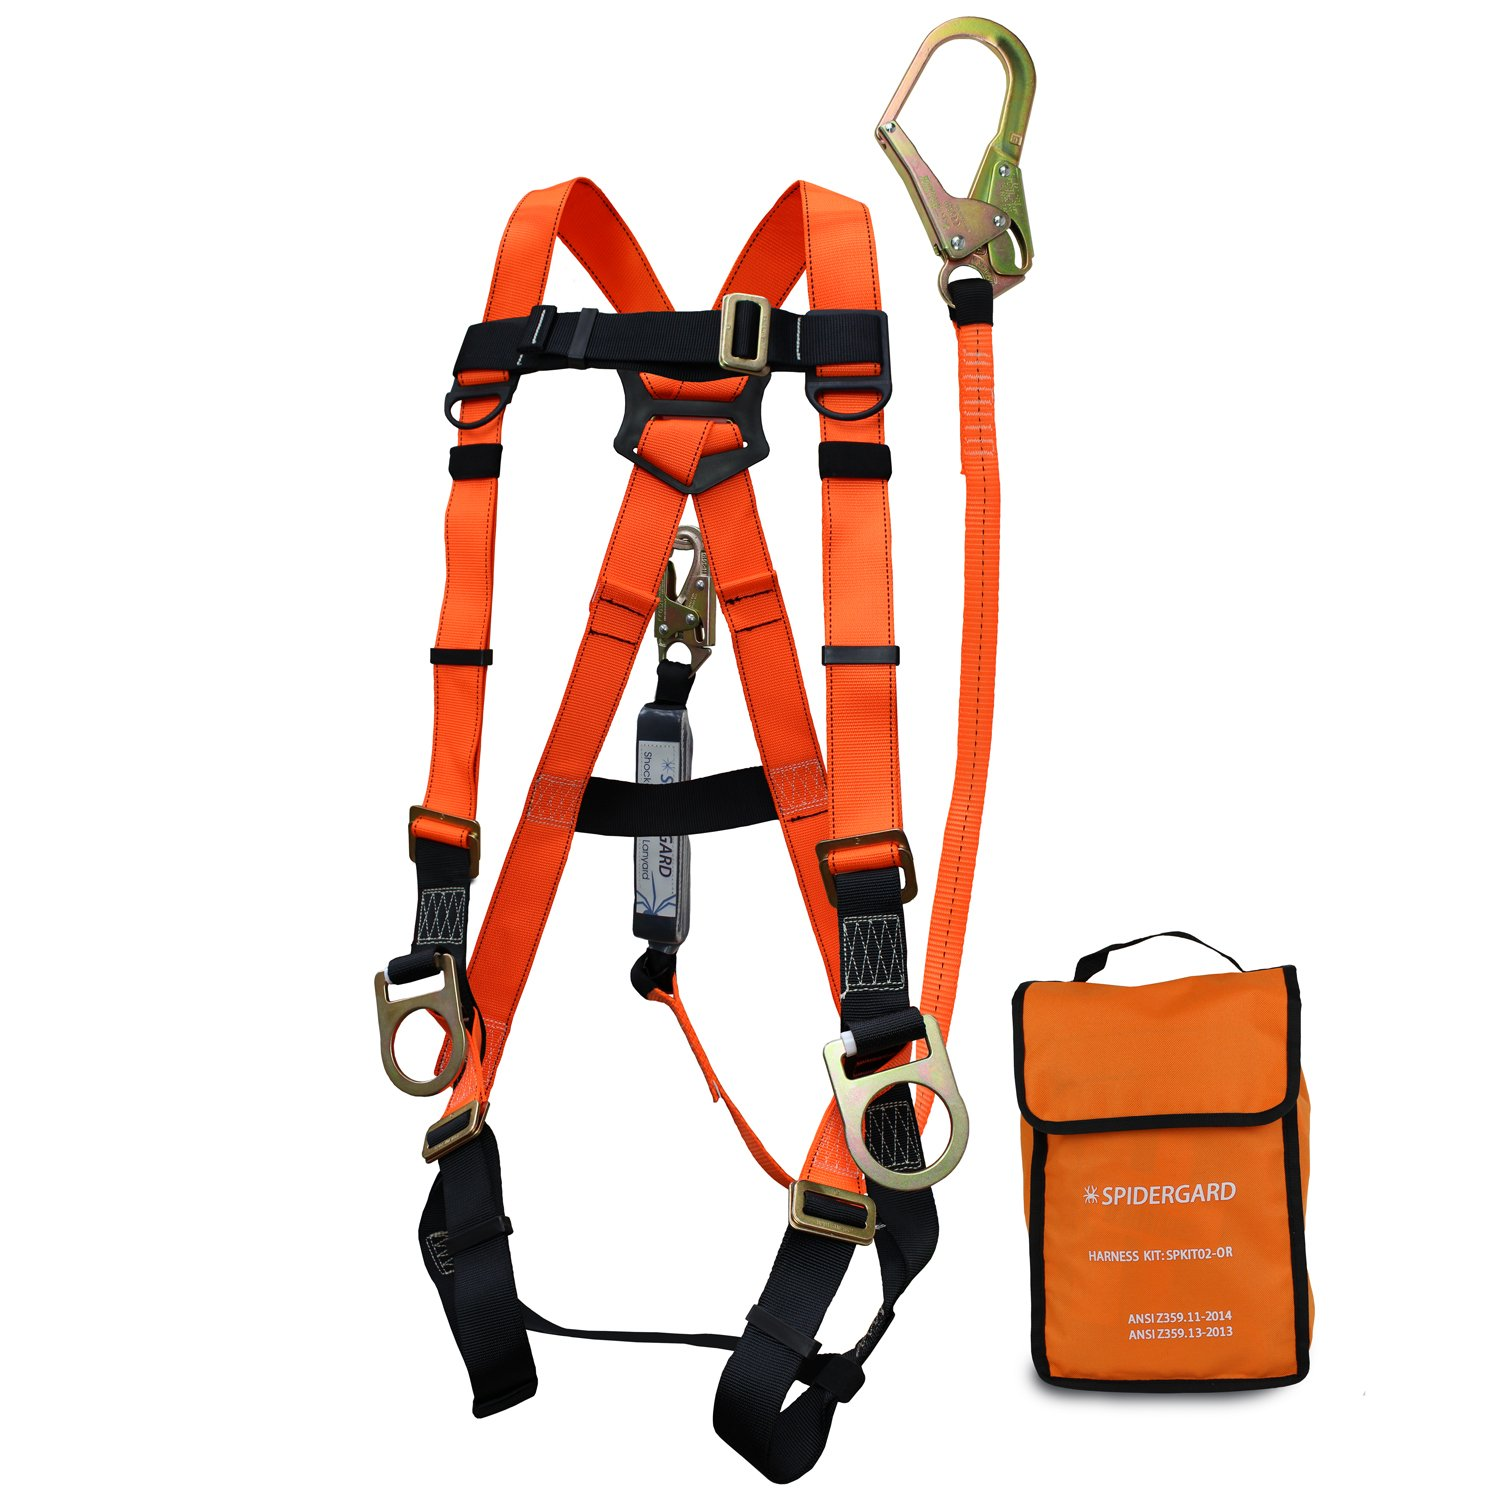 Spidergard SPKIT02 Three D-Ring Full Body Fall Protection Safety Harness Combo with 6ft Shock Absrober Rebar Hook Lanyard (2 Packs, Orange, L-XL)